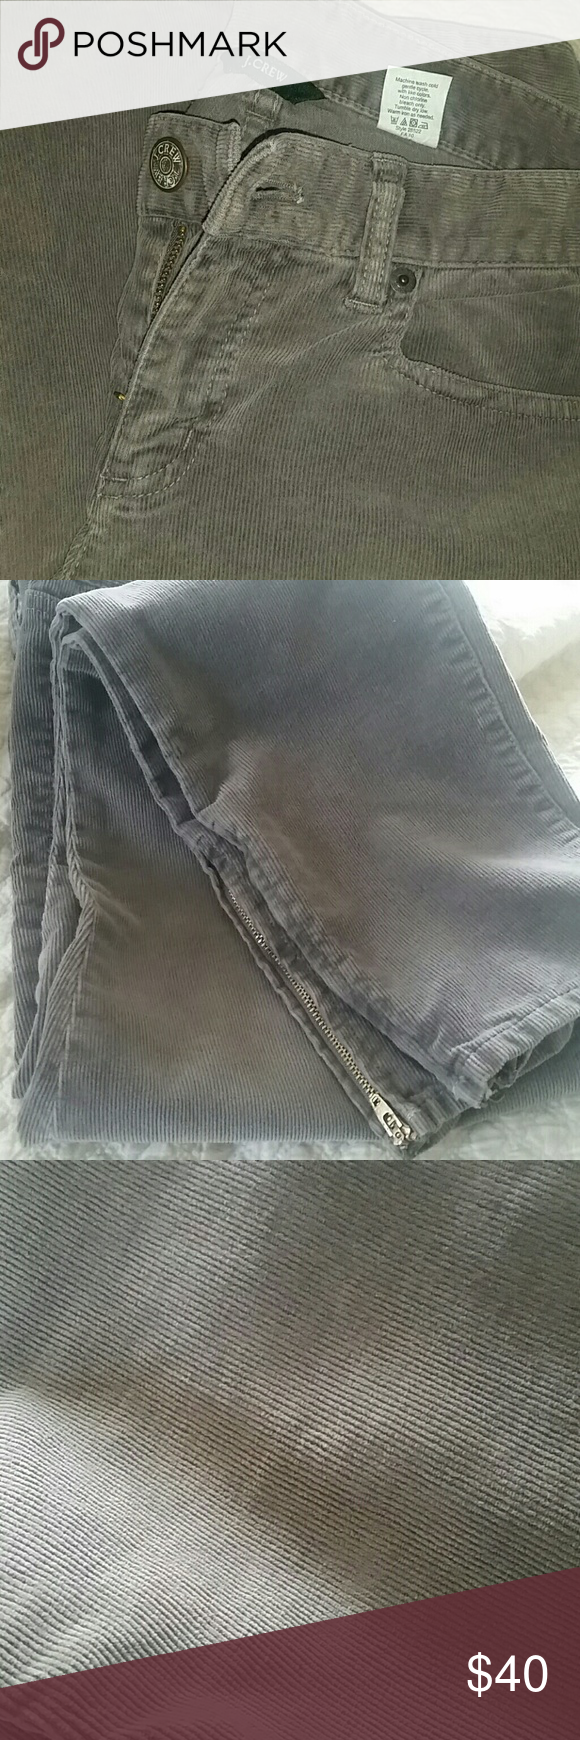 Adorable J.Crew courdory pants These pants are perfect for the season.Super skinny stretch cord pants.Great condition!?? J. Crew Pants Ankle & Cropped